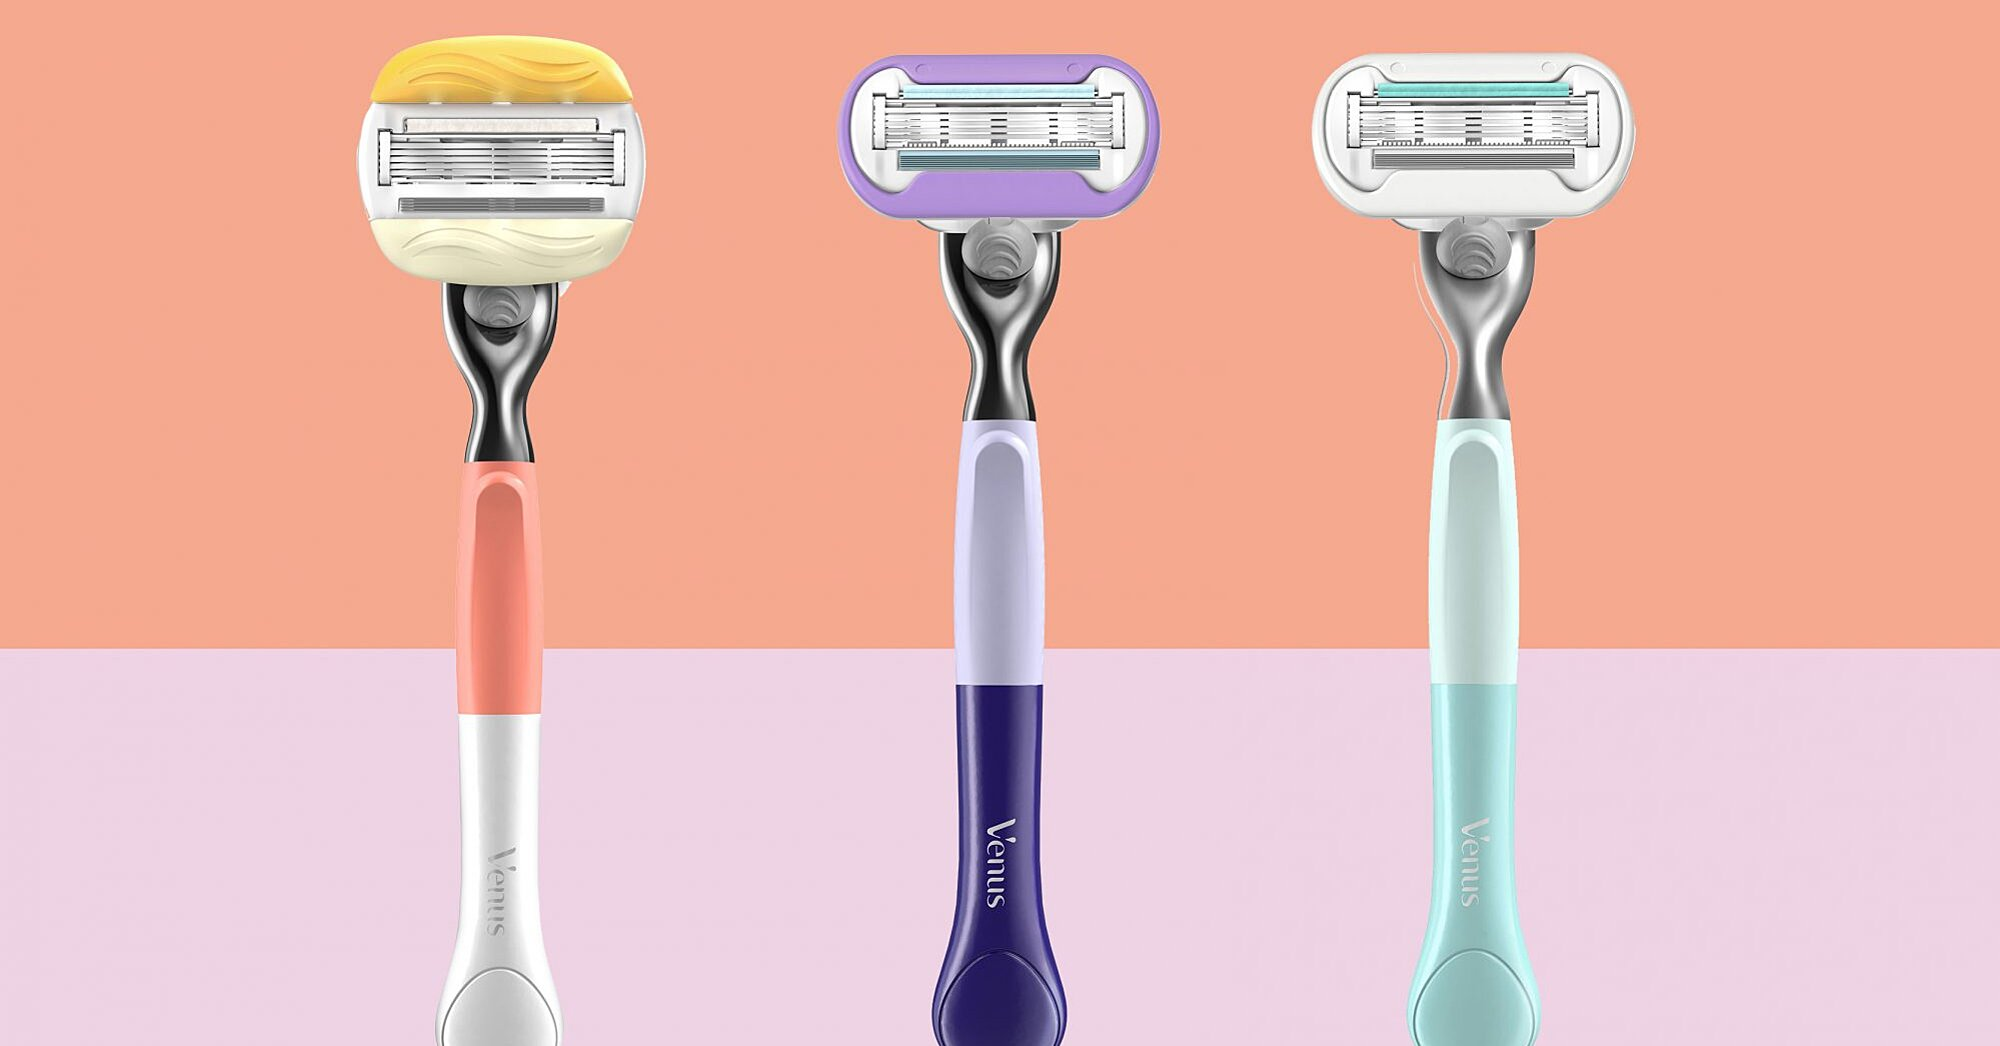 We Tried 21 Hair-Removal Products—These Are the 6 Best